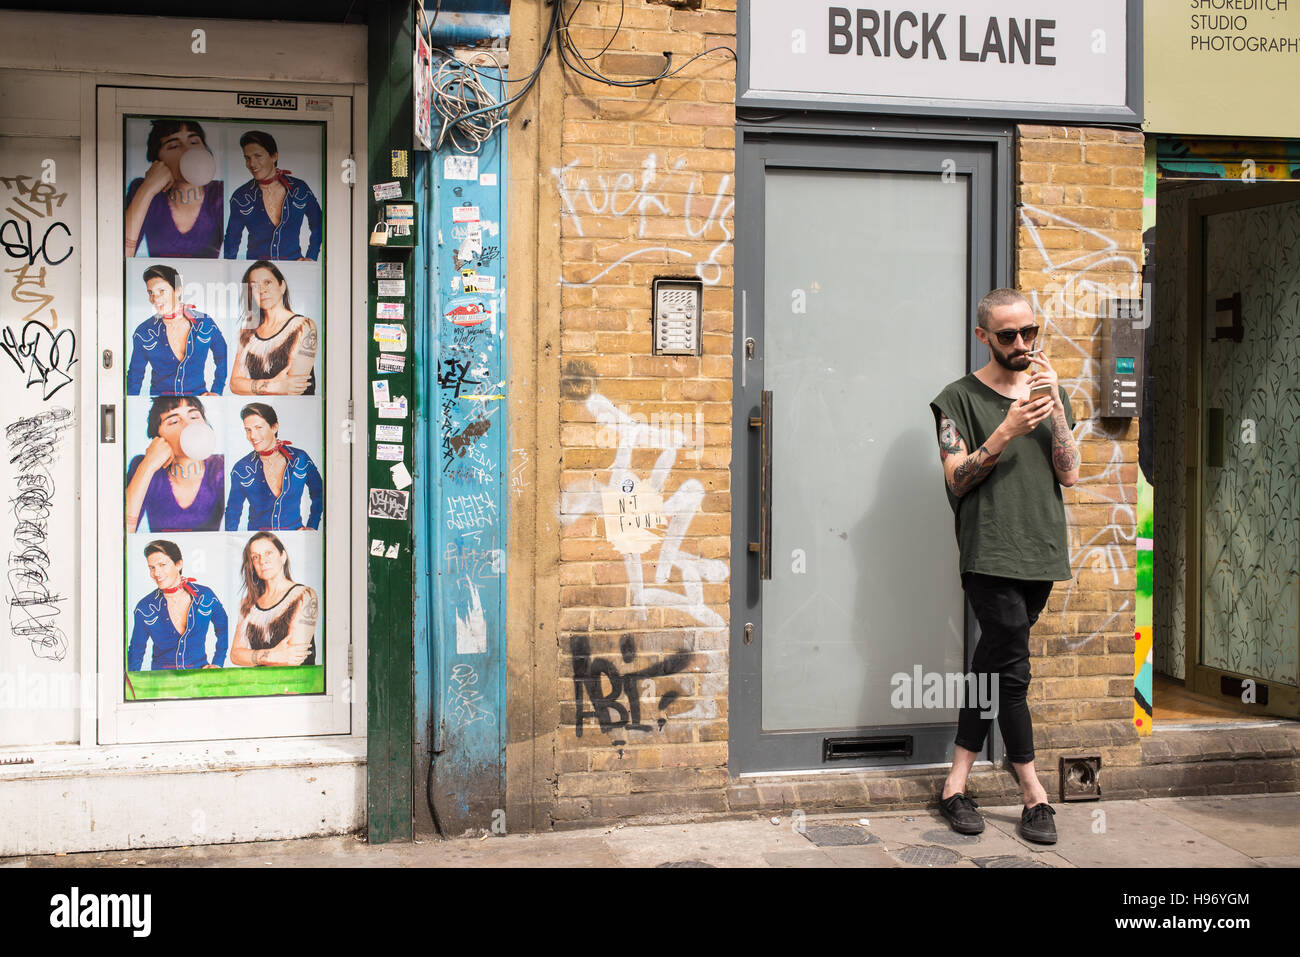 Hipster man with tattooed arms smoking a cigarette in Brick lane, Shoreditch, London, UK. Stock Photo